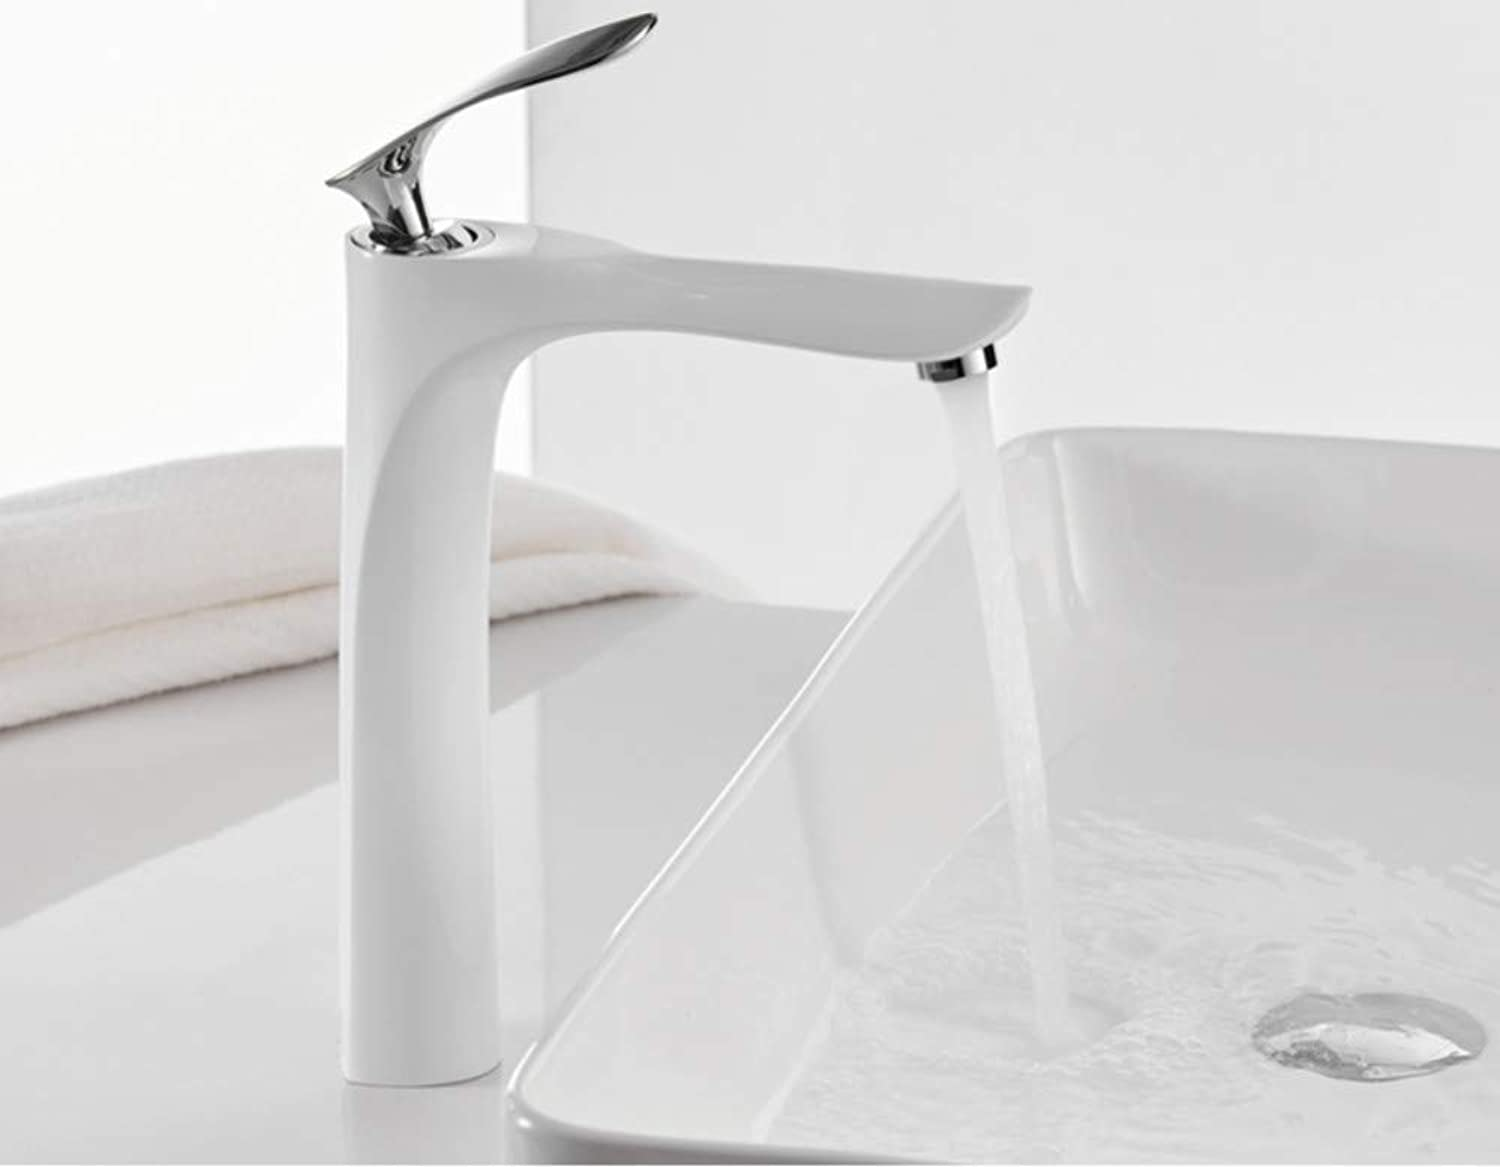 Zlxzlx Basin Faucets White color Bathroom Faucet Hot and Cold Chrome Finish Brass Toilet Sink Water Crane gold